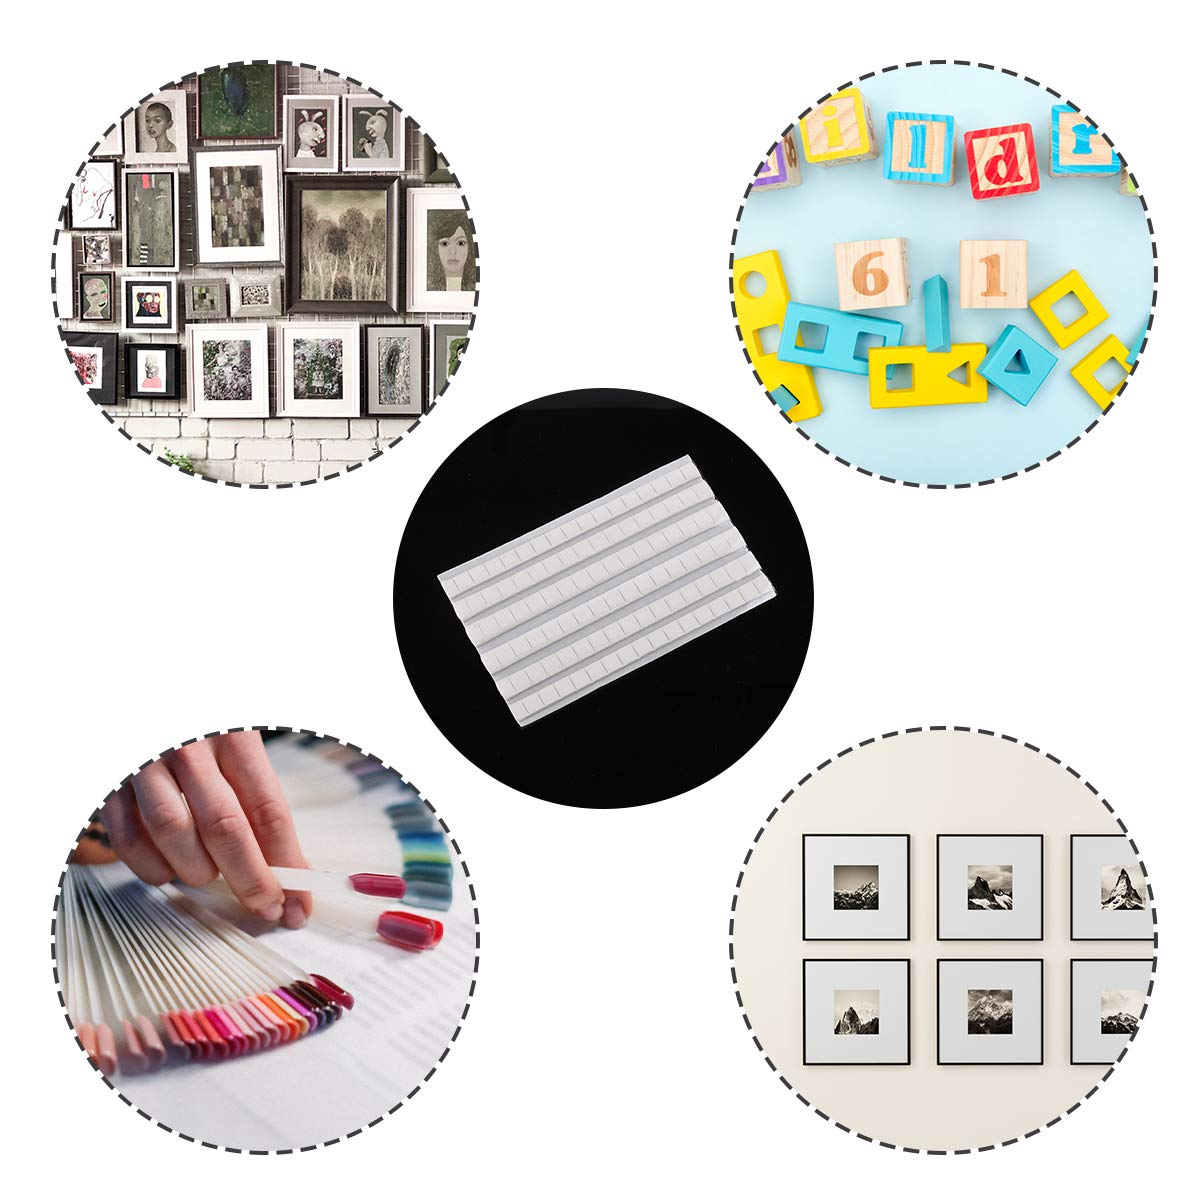 Multipurpose Adhesive Mounting Tacky Putty for Hanging Pictures Poster and Museum Art Photography 408 Pieces Removable Adhesive Poster Putty Non-Toxic Mounting Putty Reusable Wall Safe Tack Putty